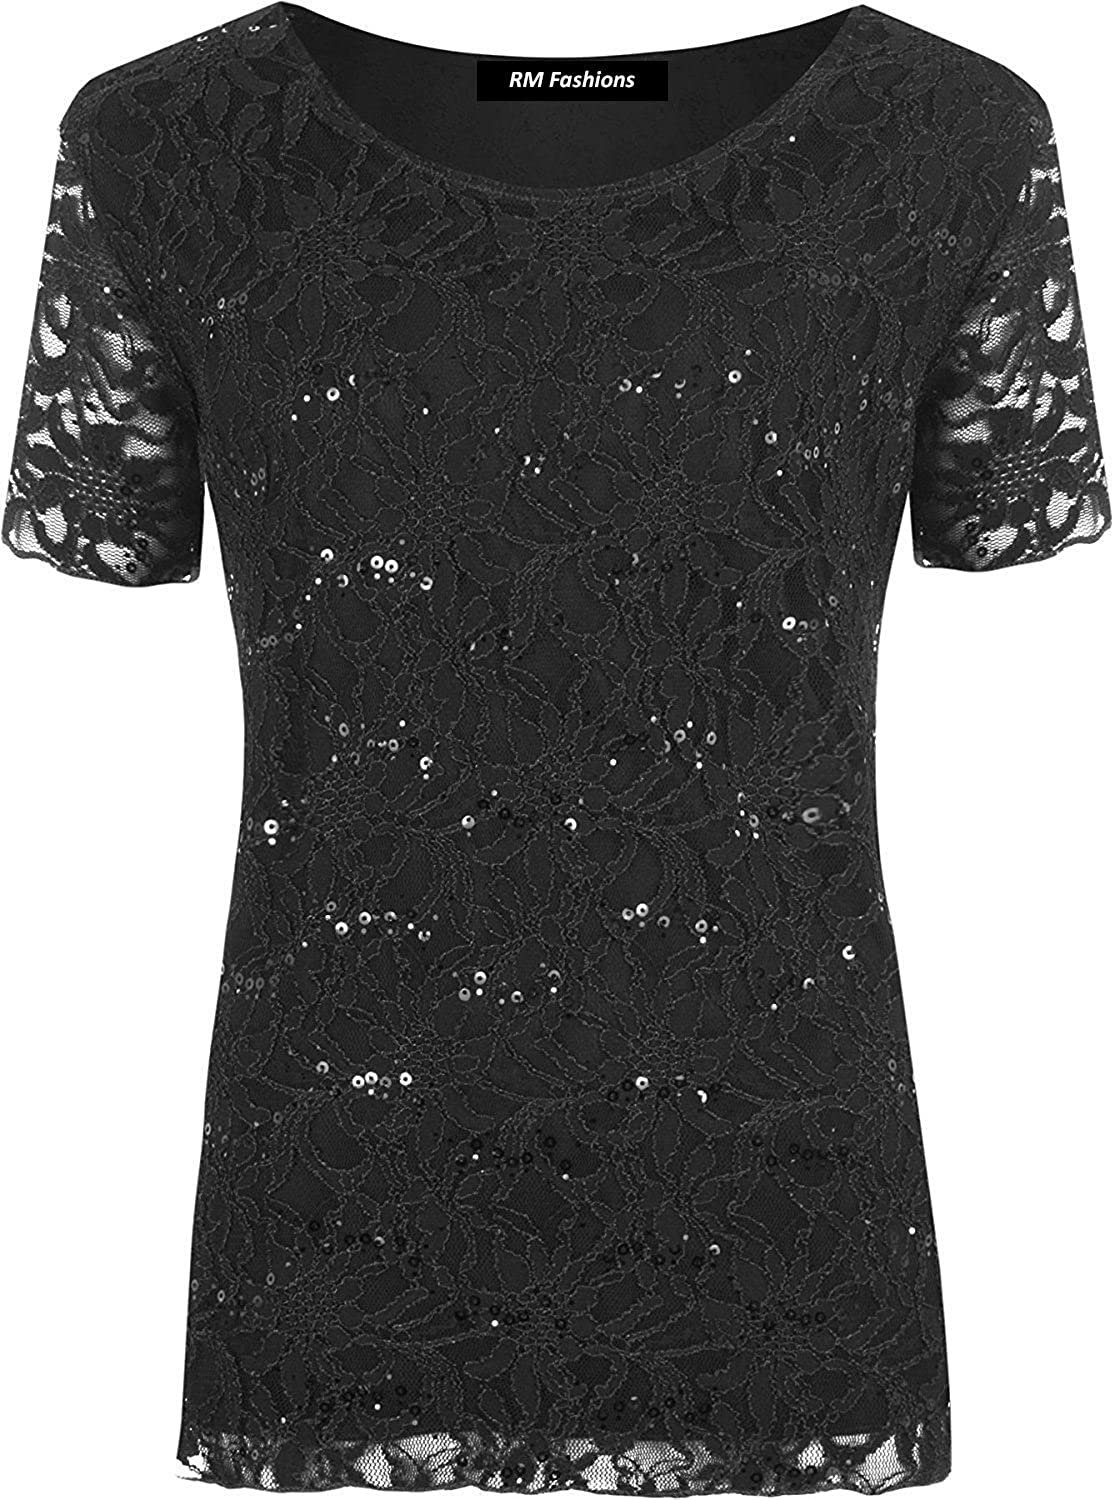 Rimi Hanger Womens Floral Lace Sequin Sparkle T Shirt Ladies Short Sleeve Fancy Party Top S//3XL